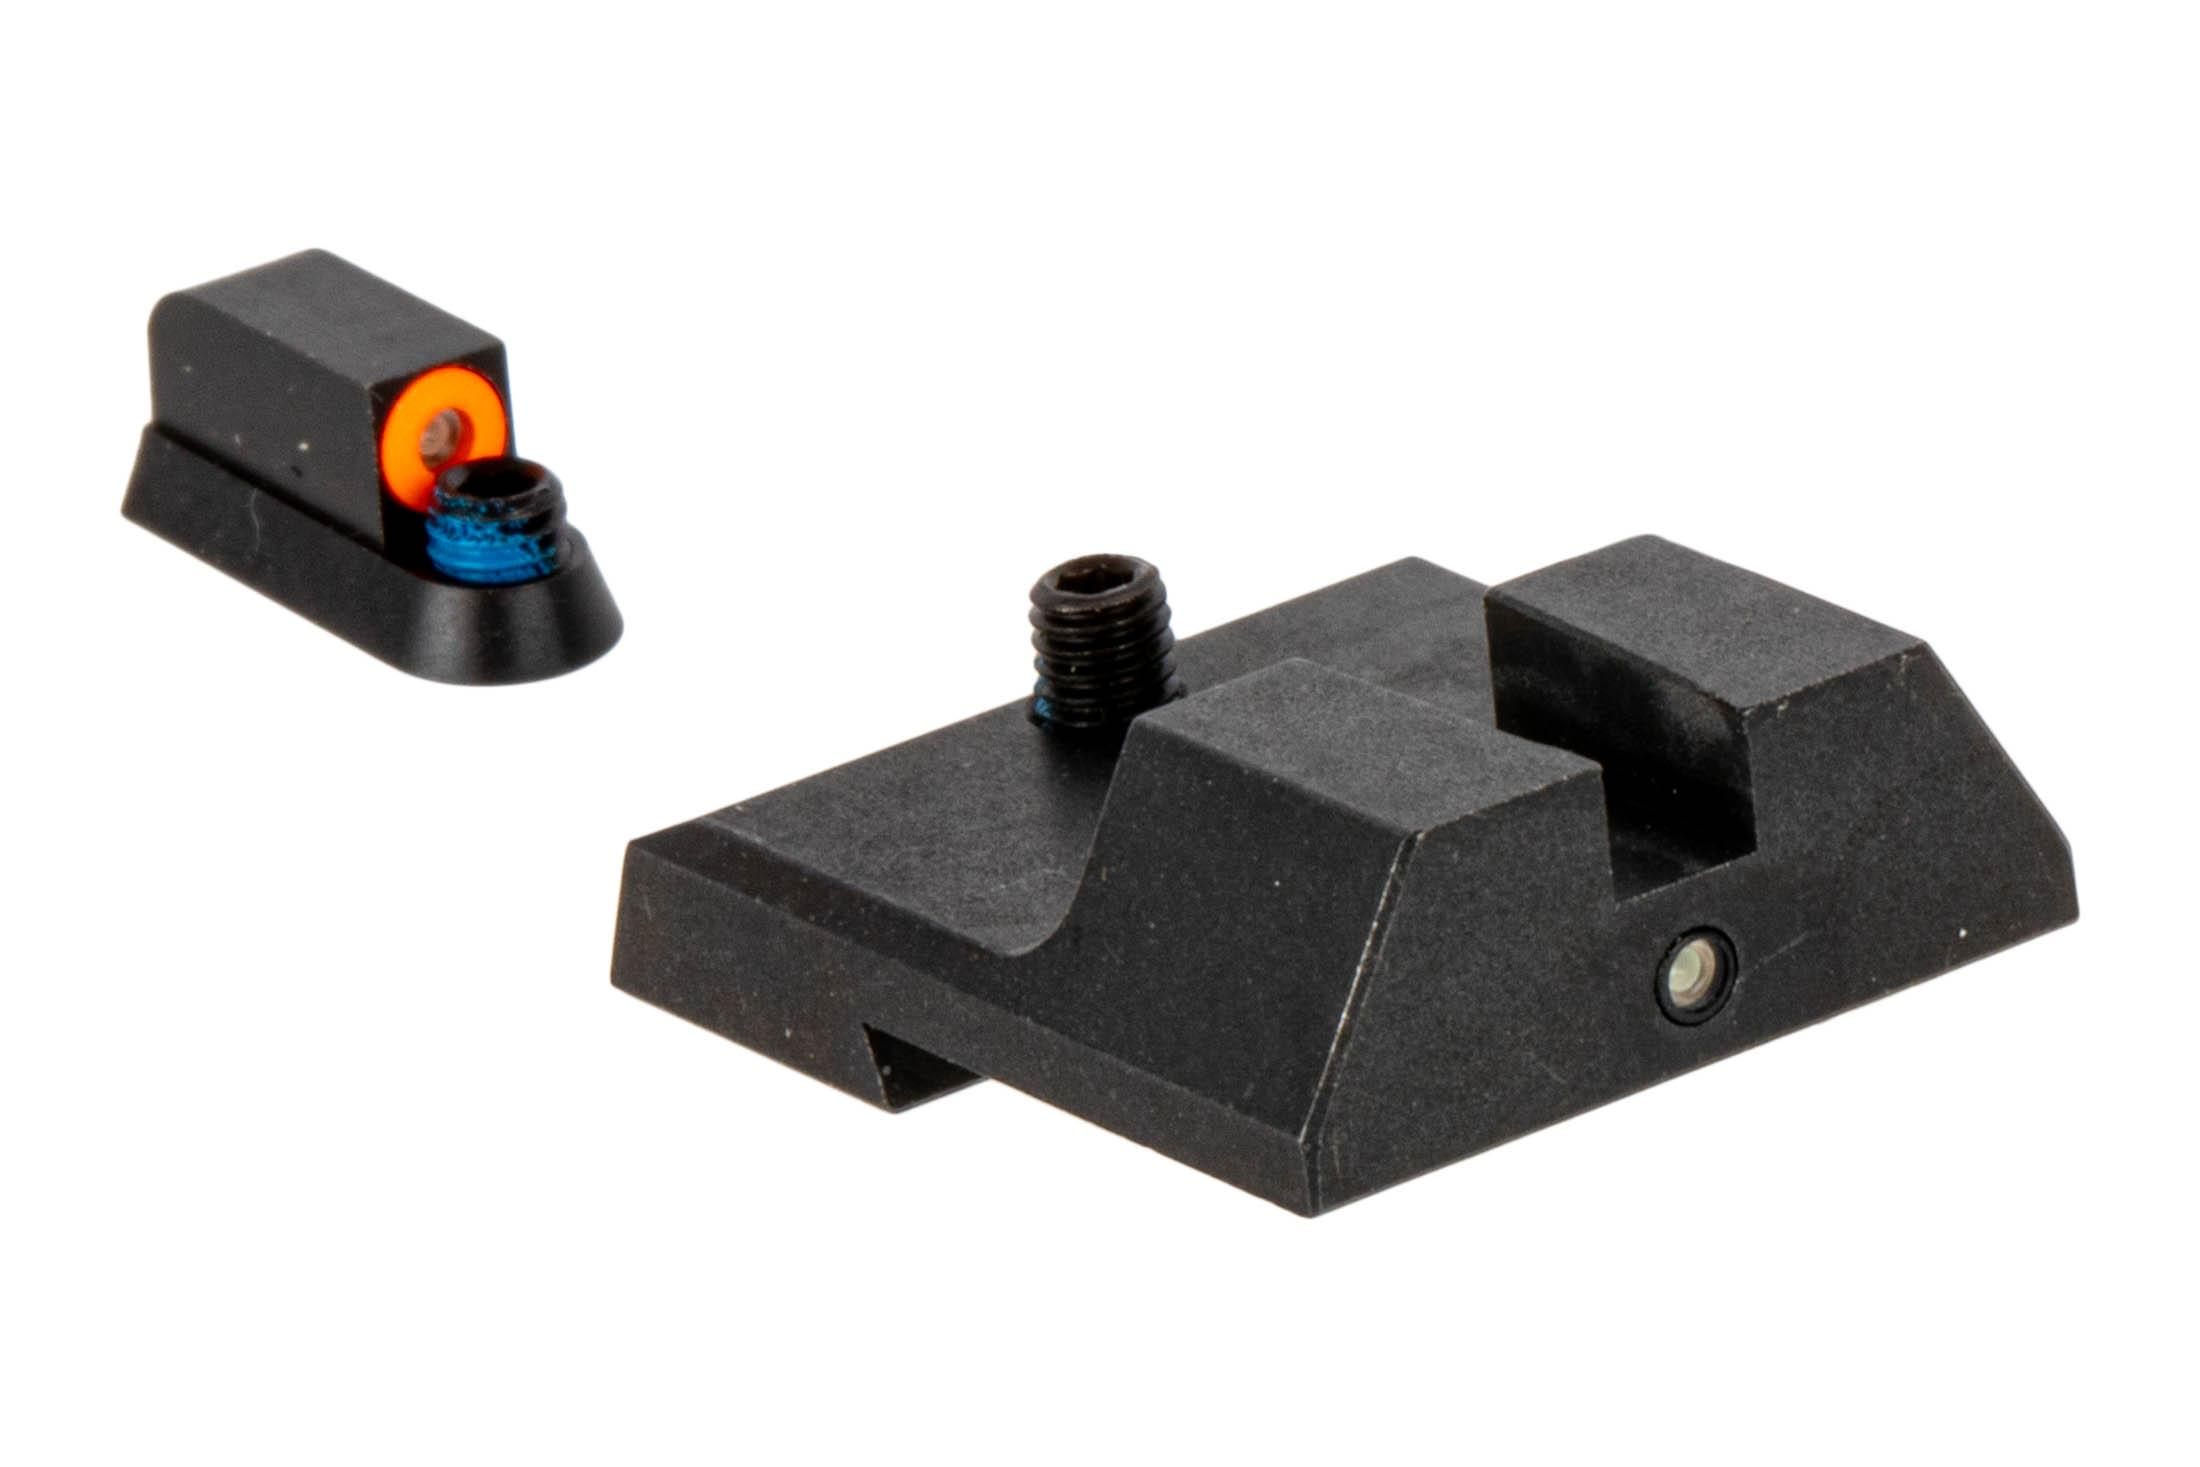 Night Fision Accur8 Perfect Dot Night Sight Set with square notch, Orange front and Black rear ring for the CZ P10C.